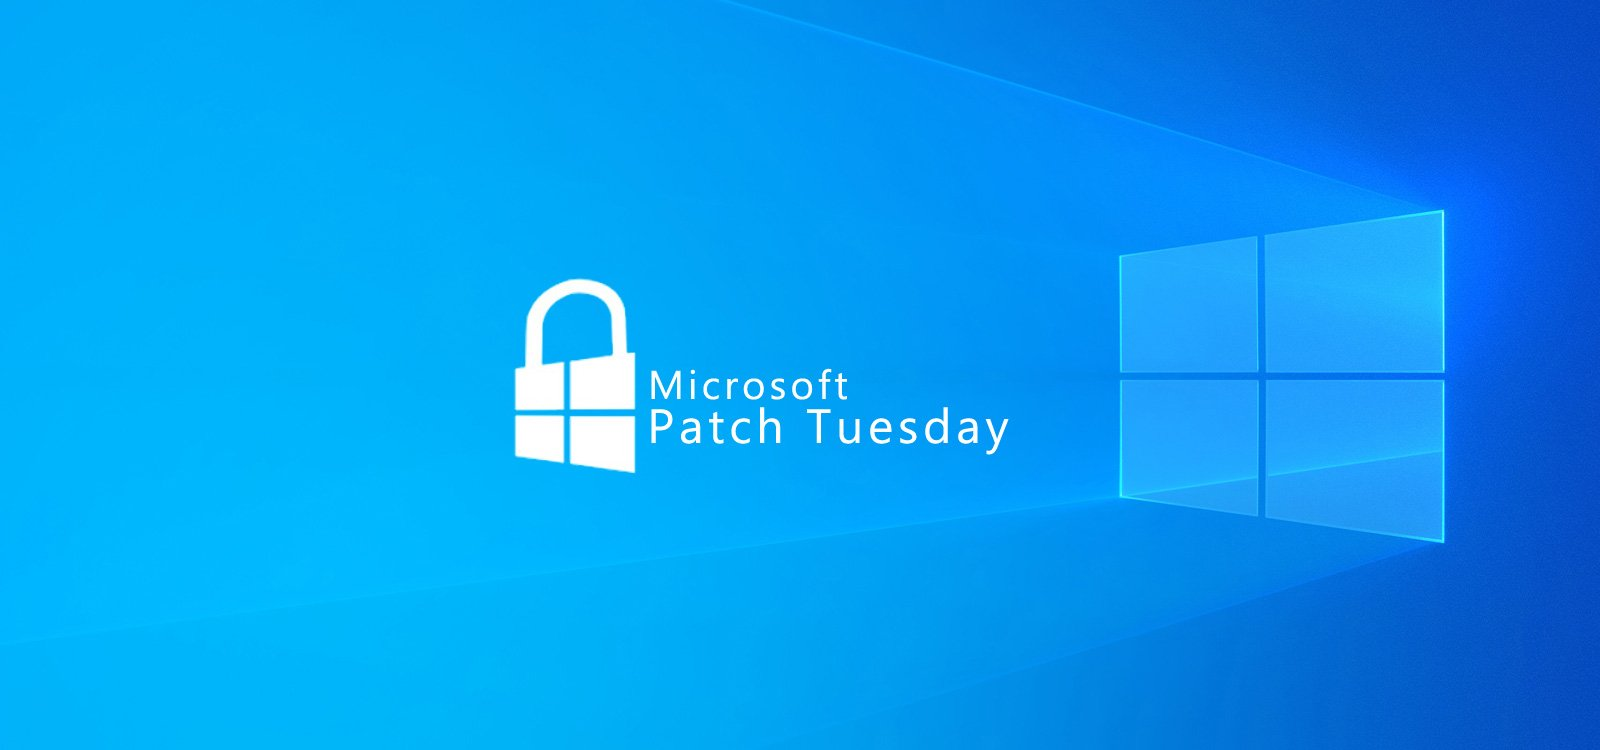 Microsoft July 2021 Patch Tuesday fixes 9 zero-days, 117 flaws